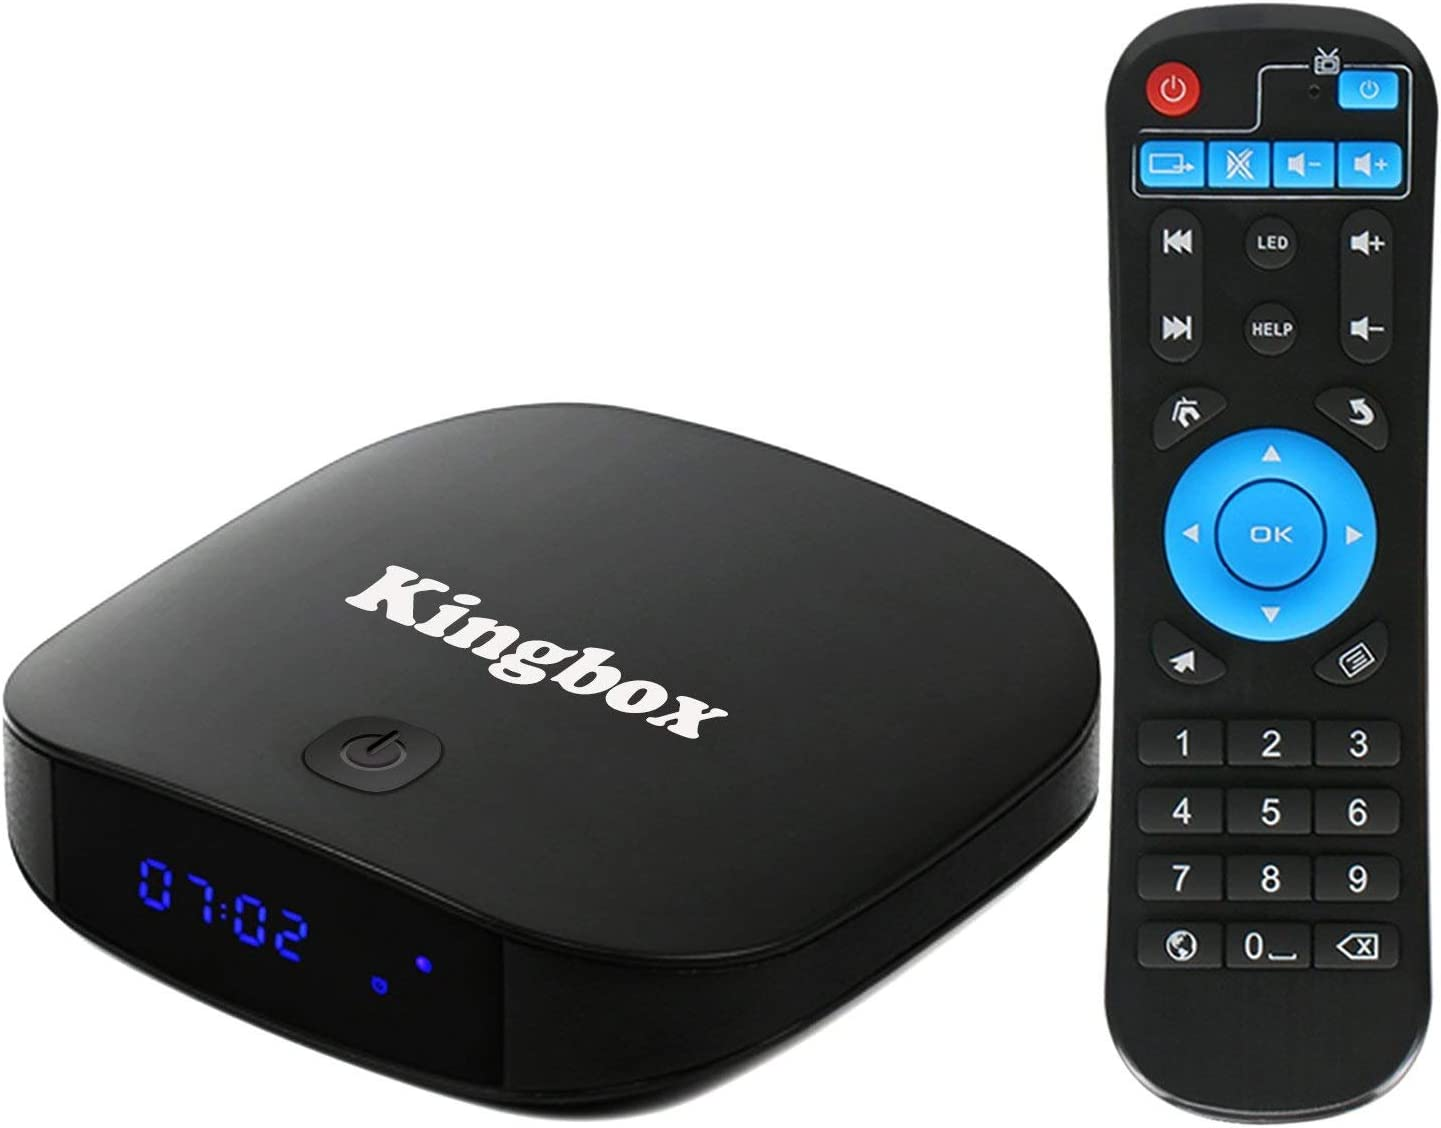 Kingbox K2 Android 7.1 TV Box de 2GB RAM + 16GB ROM/ BT4.0/ Penta Core/ 4K/ H.265 Smart TV Box [2018 Última Edición]: Amazon.es: Electrónica